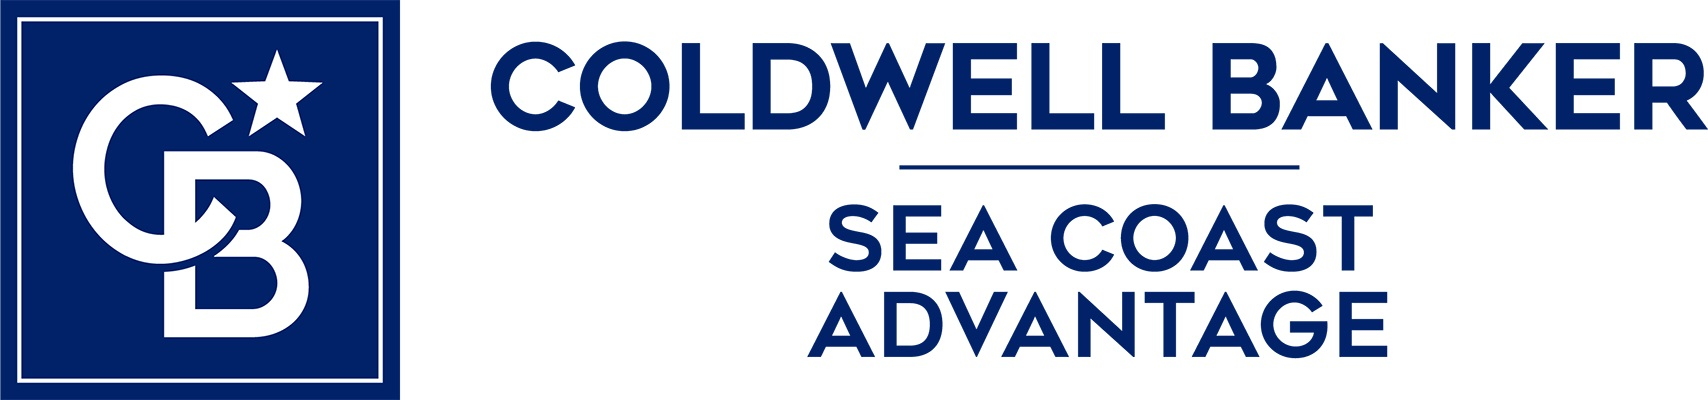 Chuck Kinlaw - Coldwell Banker Sea Coast Advantage Realty